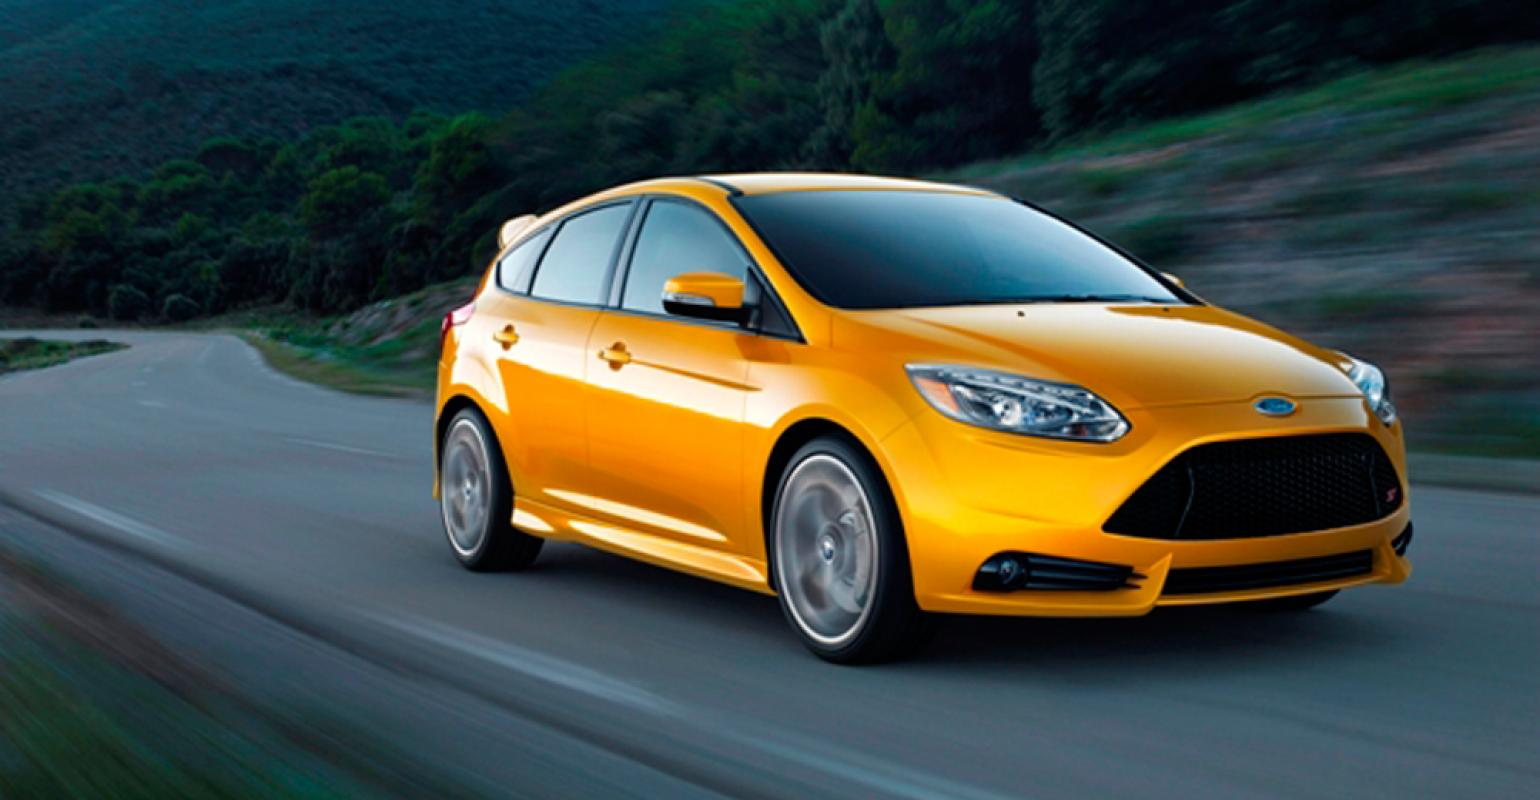 rsquo13 Focus ST powered by 20L EcoBoost 4cyl engine producing 252 hp. '